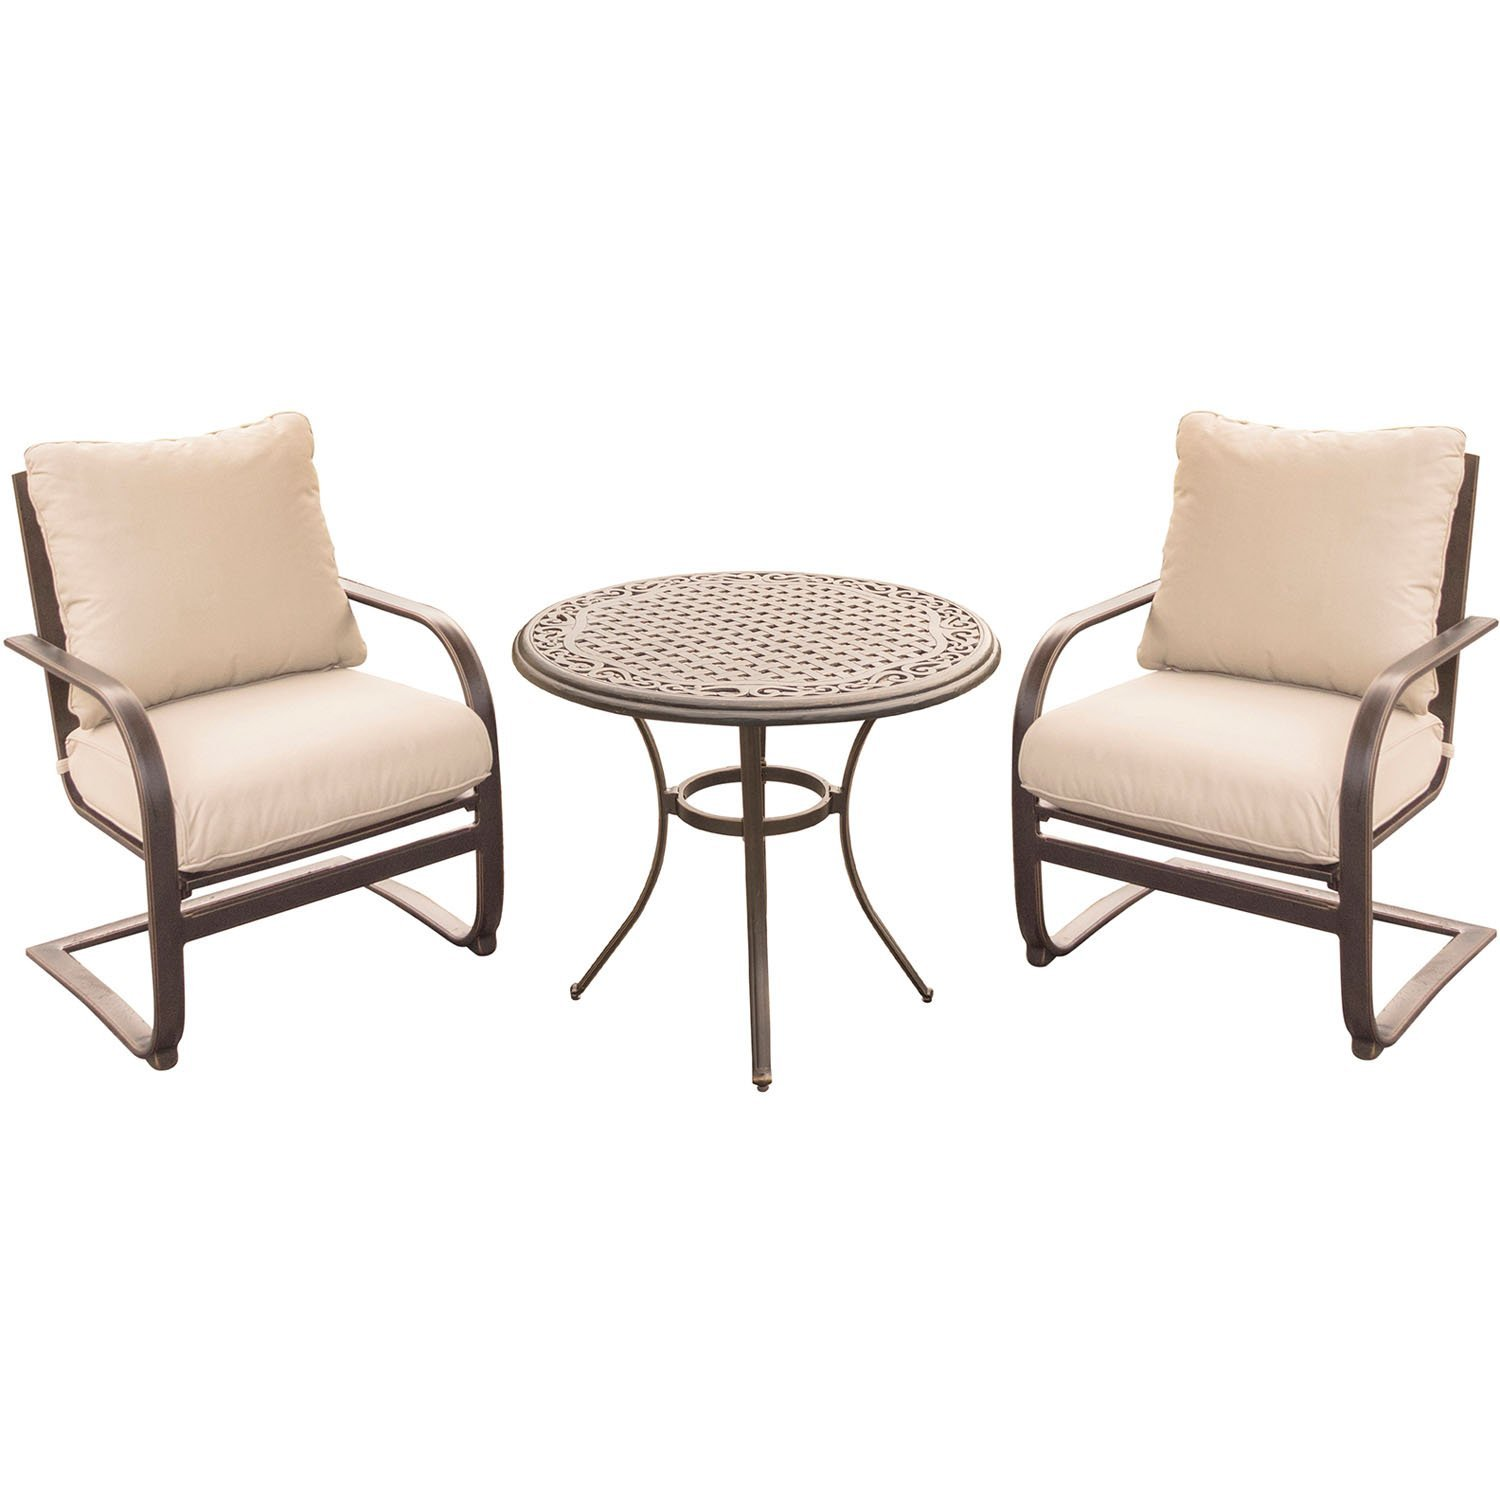 Summer Nights 3-Piece Chat Set in Tan with Two C-Spring Chairs and a 32 In. Cast-top Table